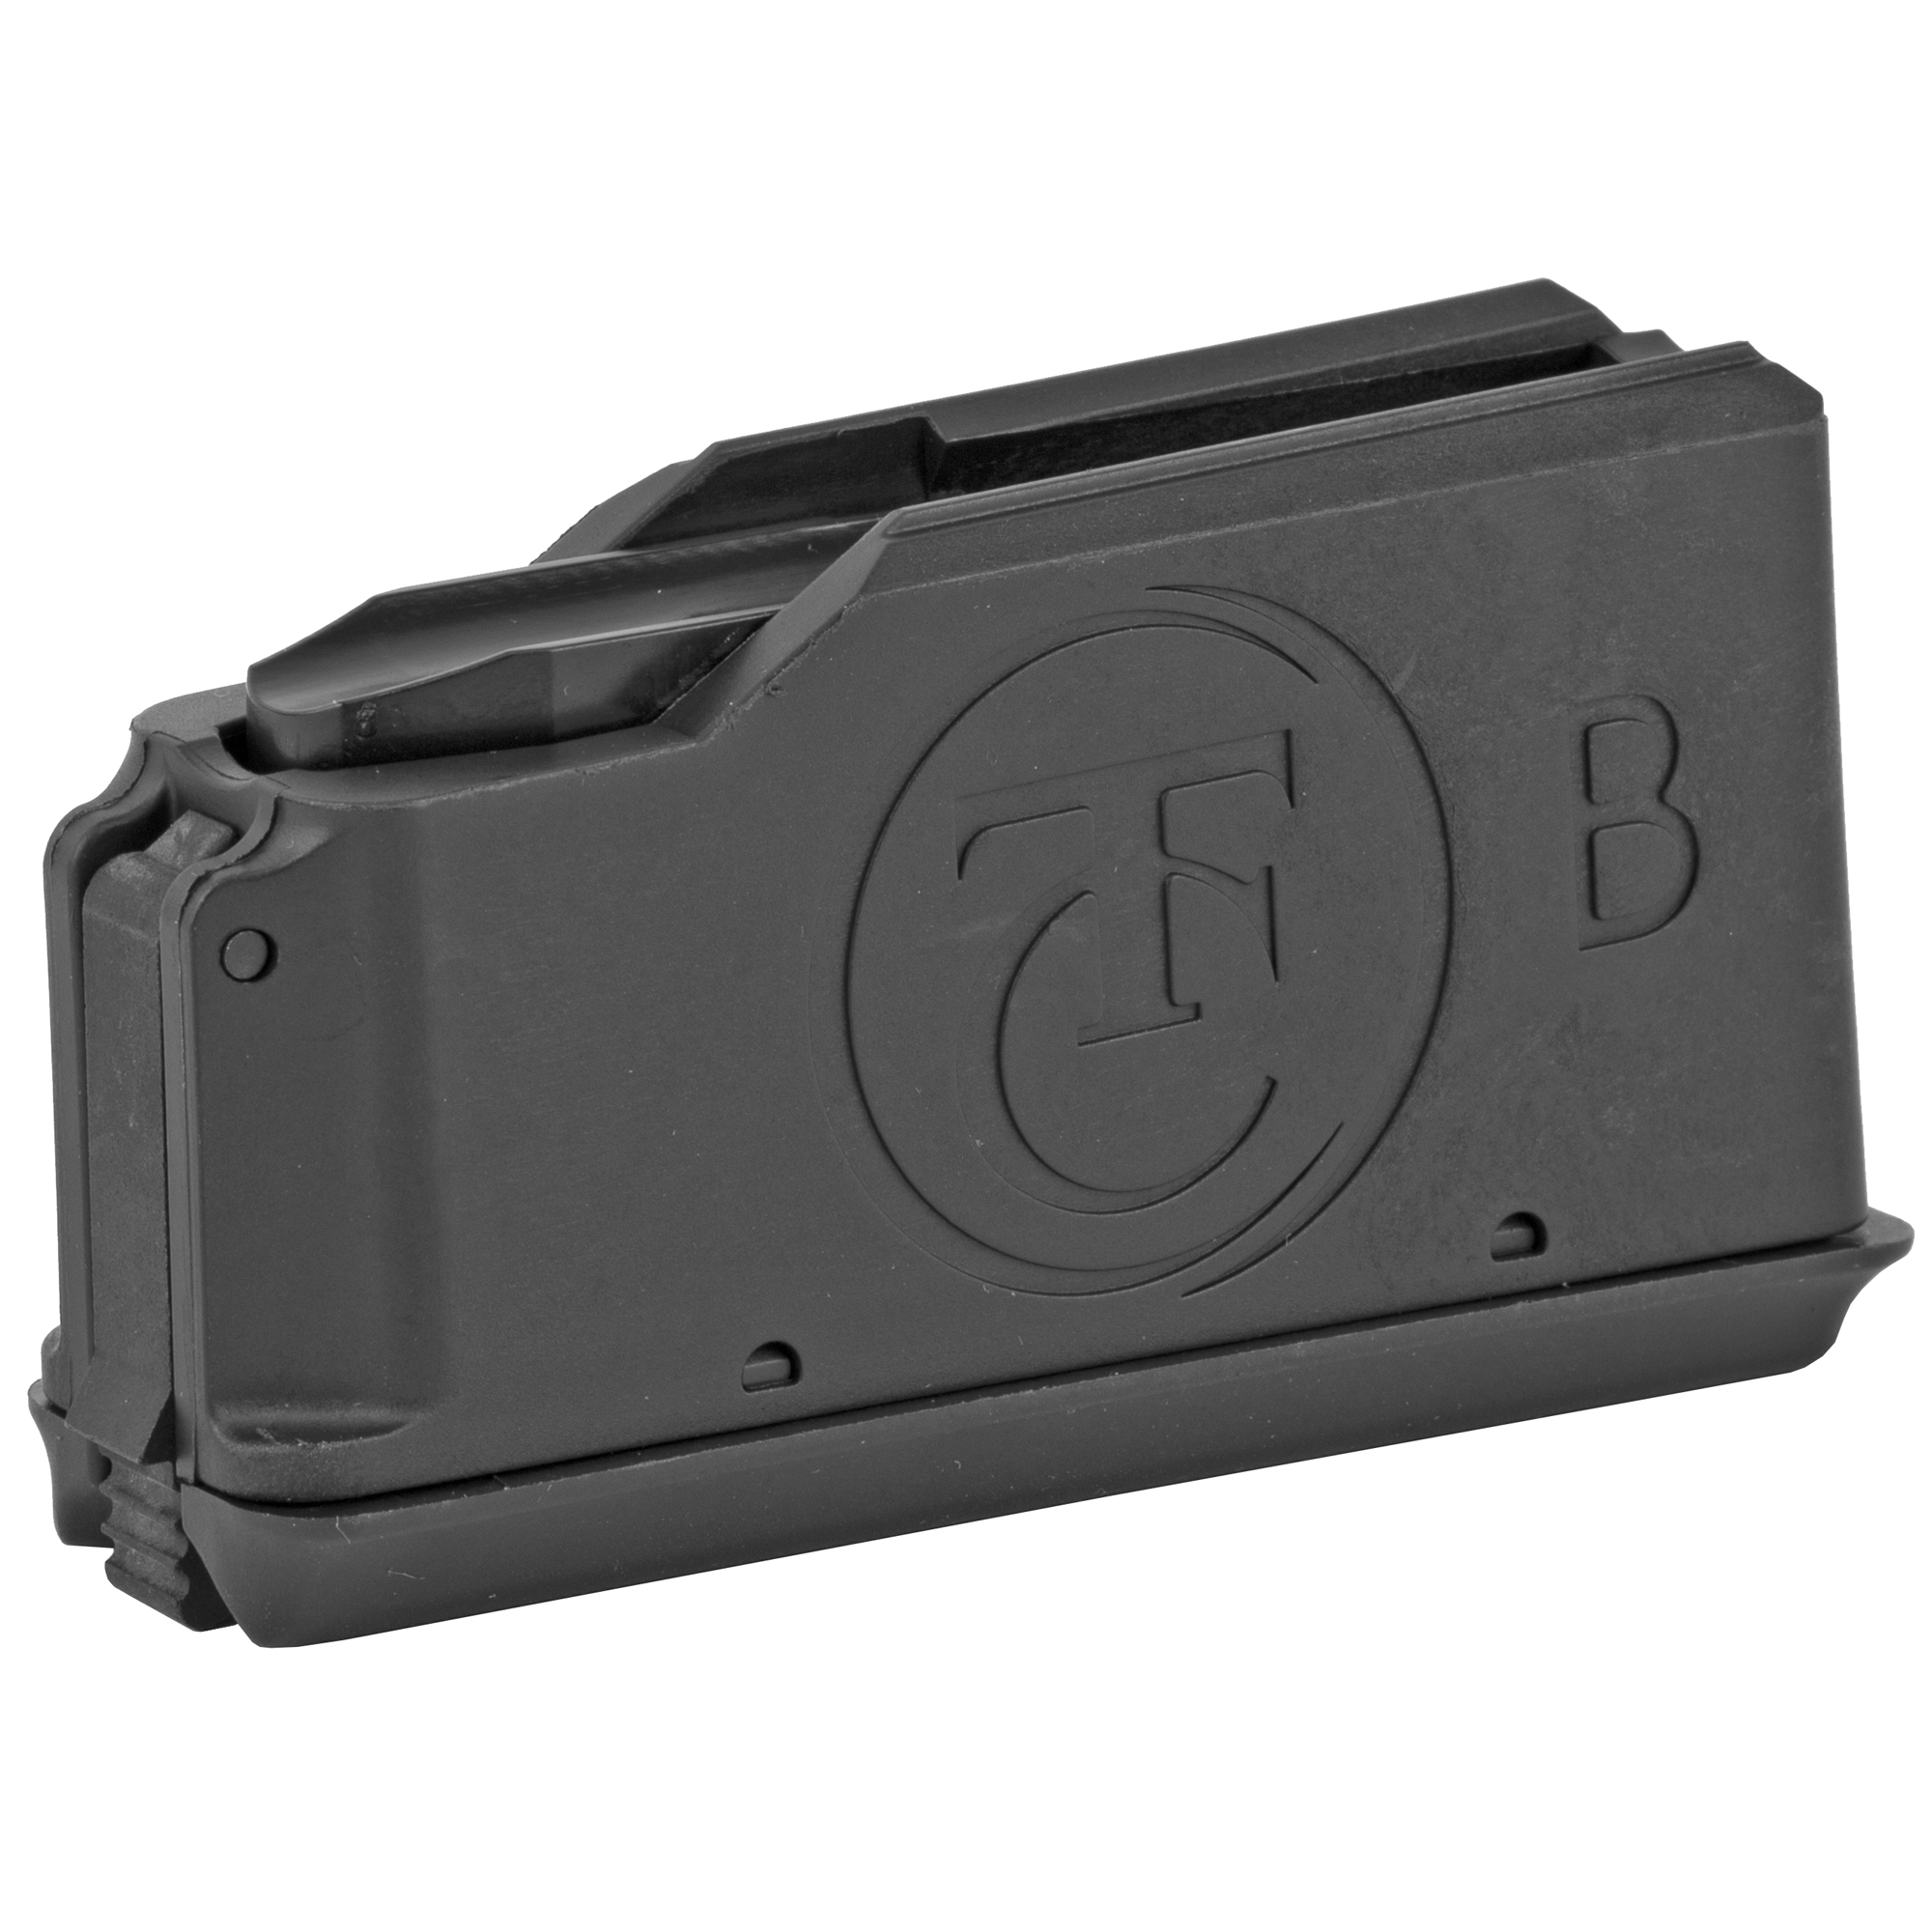 This Thompson/Center factory magazine features high quality components and precise manufacturing that will ensure long-lasting performance and reliability.